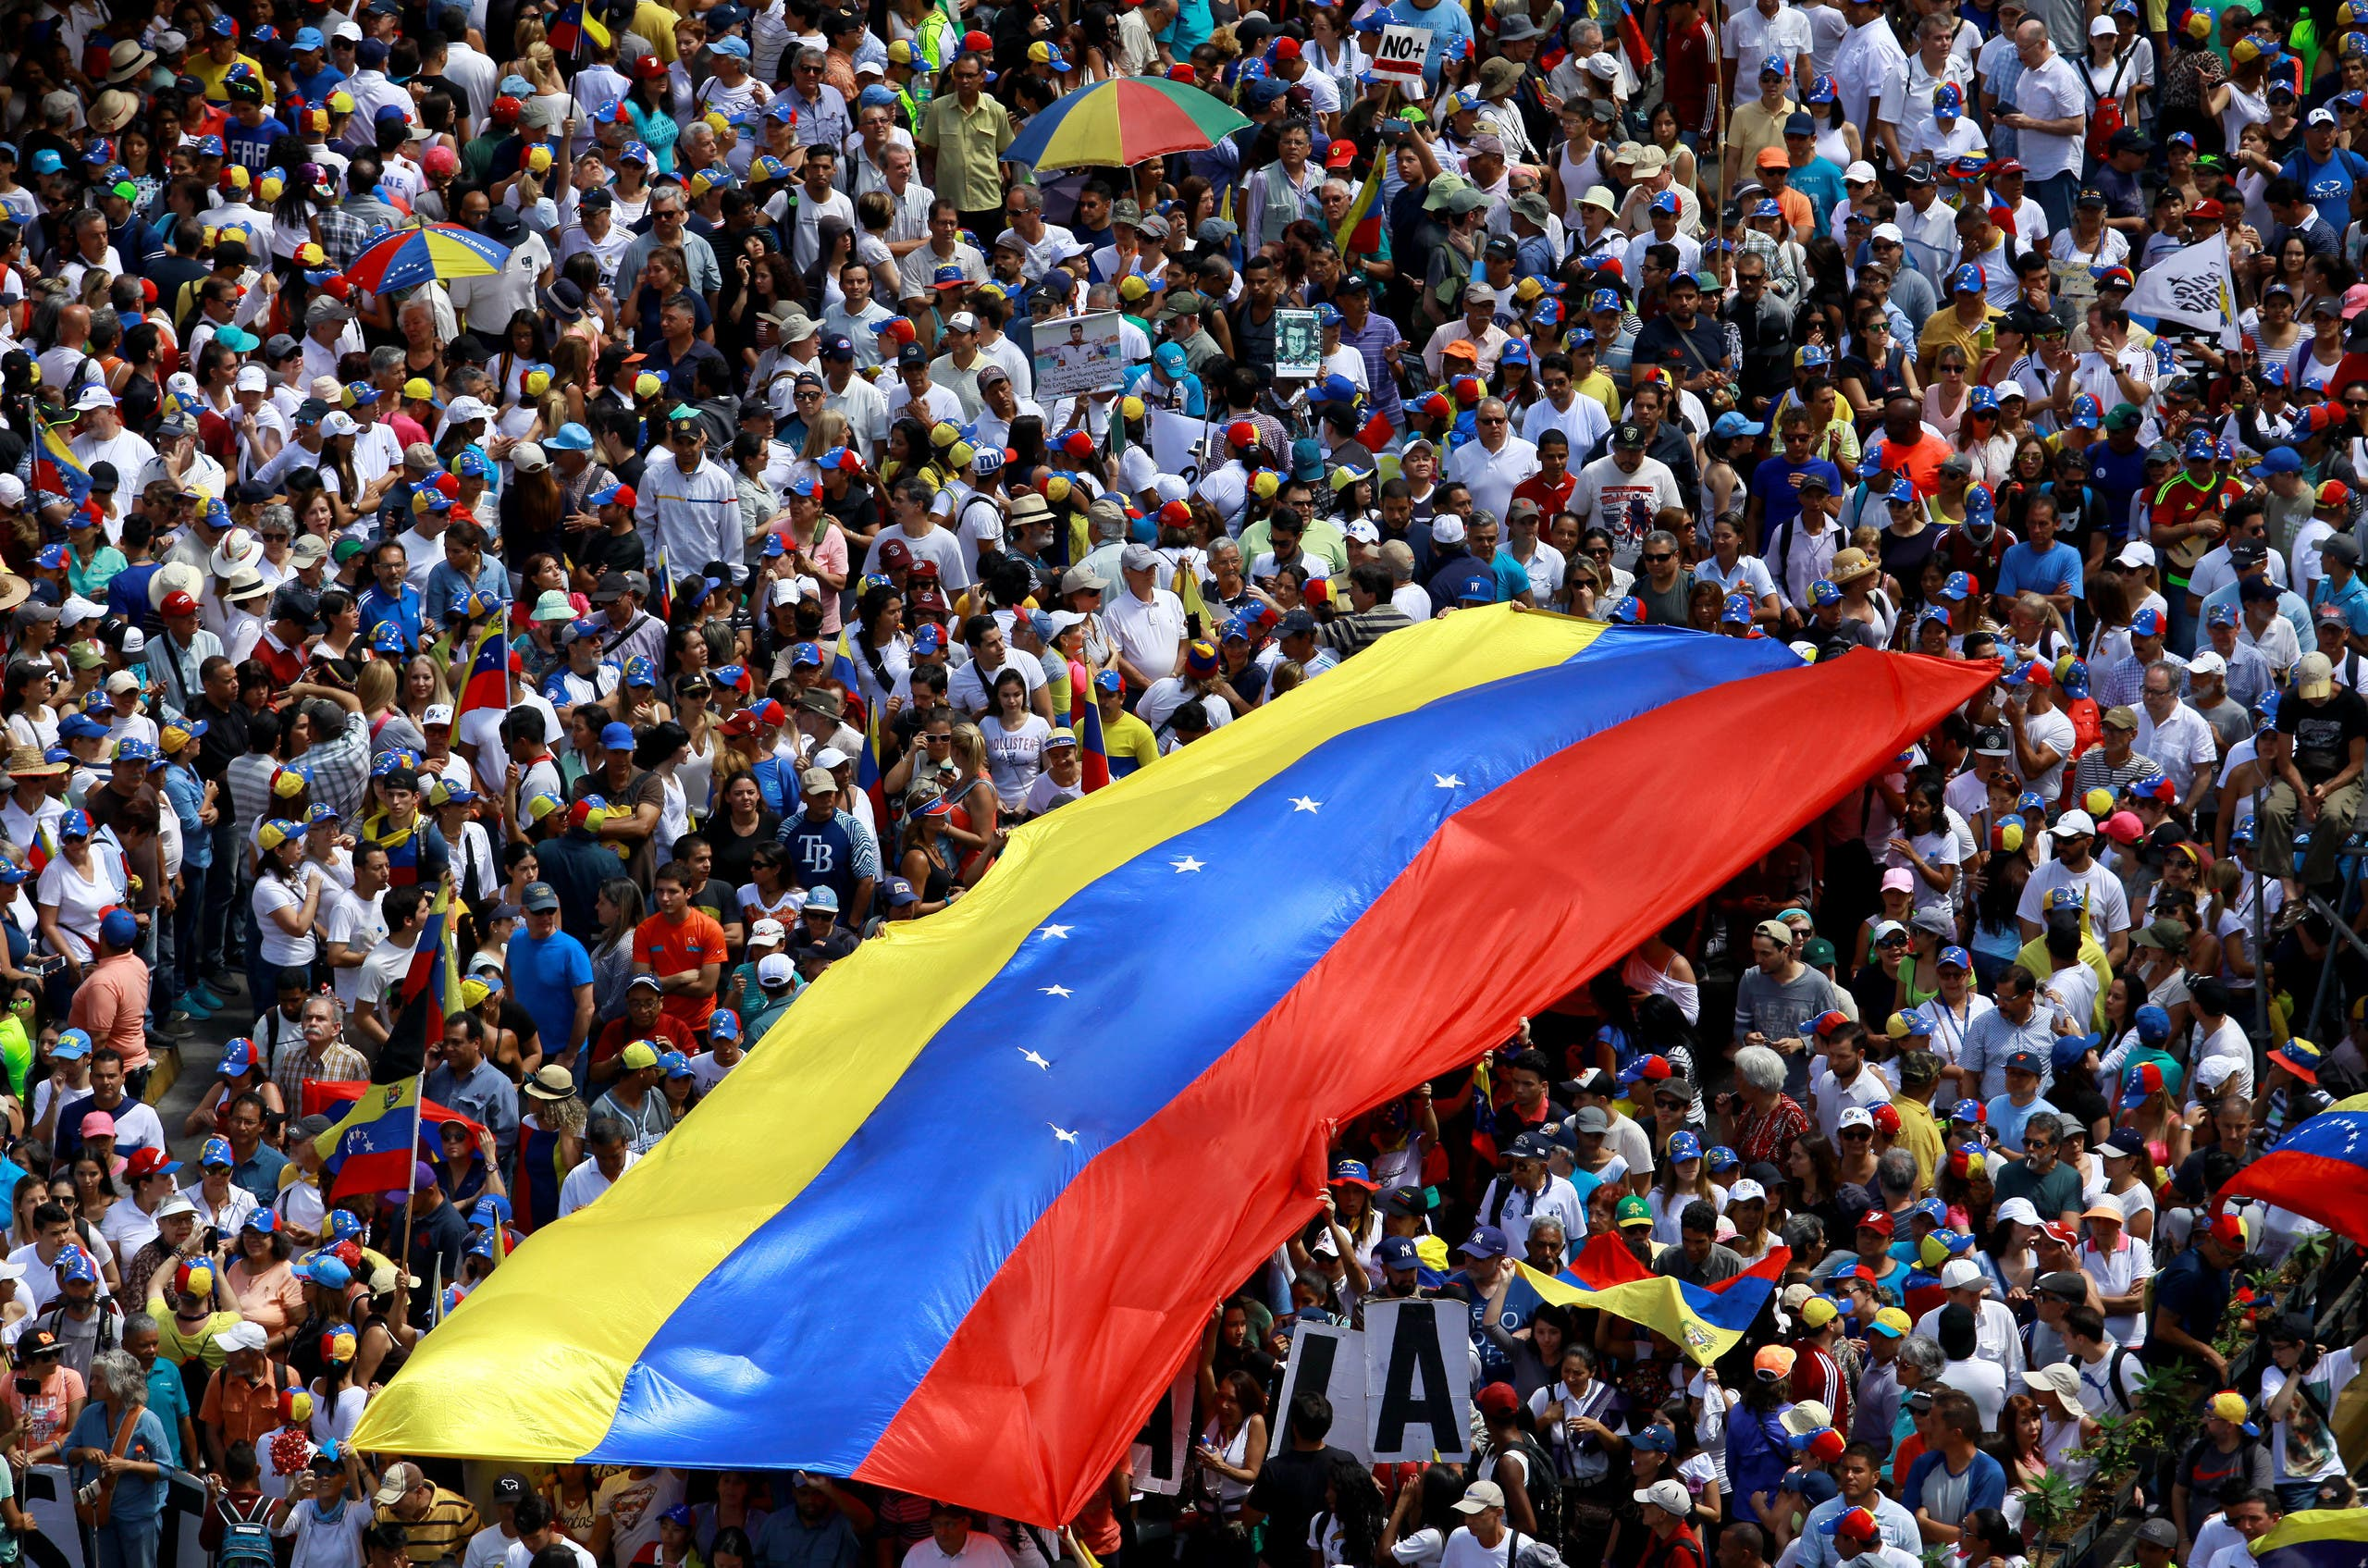 Opposition supporters take part in a rally to commemorate the Day of the Youth and to protest against Venezuelan President Nicolas Maduro's government in Caracas, Venezuela February 12, 2019. REUTERS/Adriana Loureiro NO RESALES. NO ARCHIVES